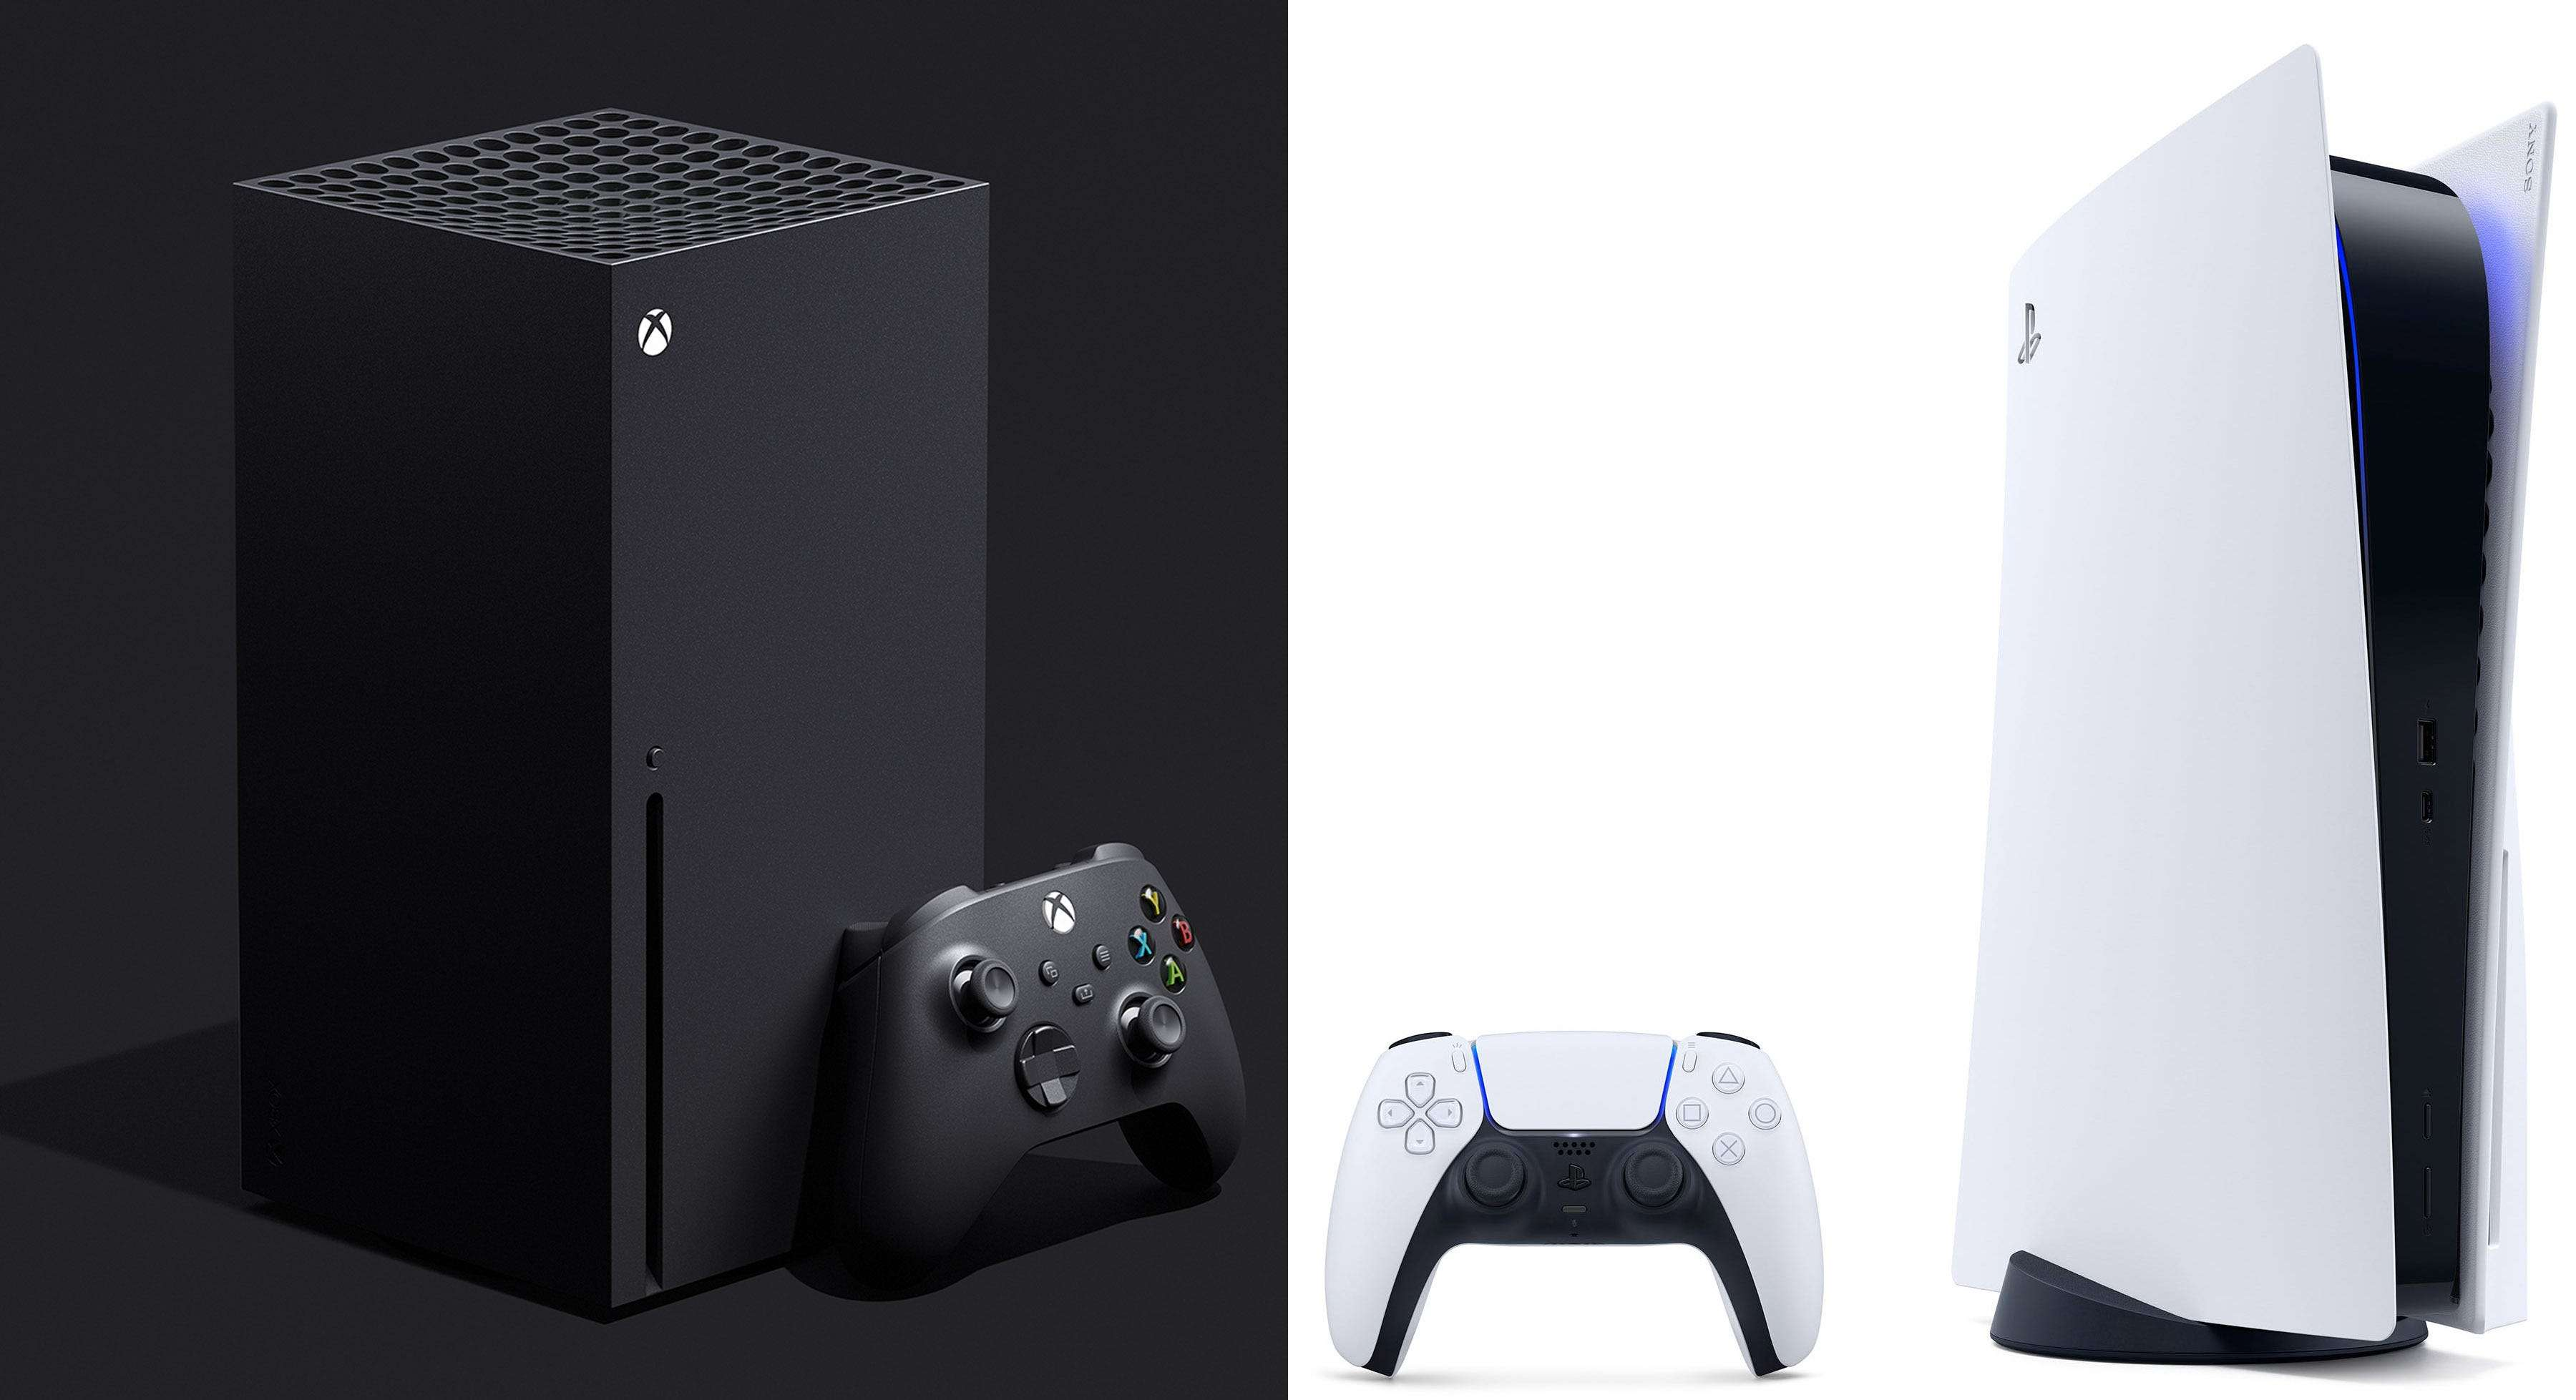 How To Play Fortnite With Other Consoles Fortnite On Playstation 5 And Next Gen Xbox What To Expect